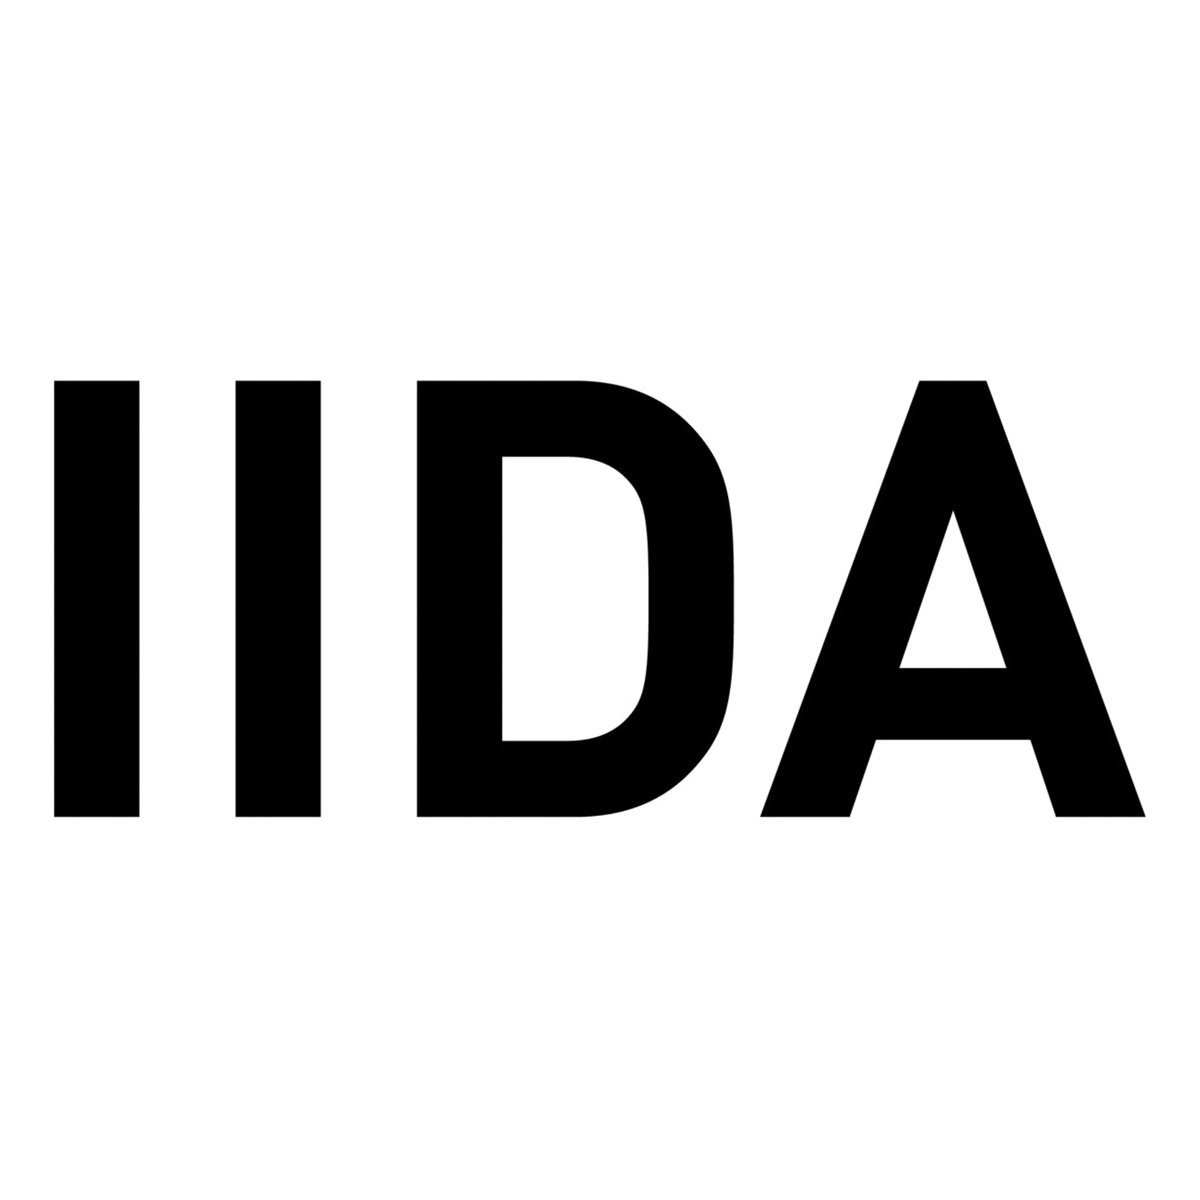 IIDA Reveals 7th Annual Healthcare Design Awards Winners